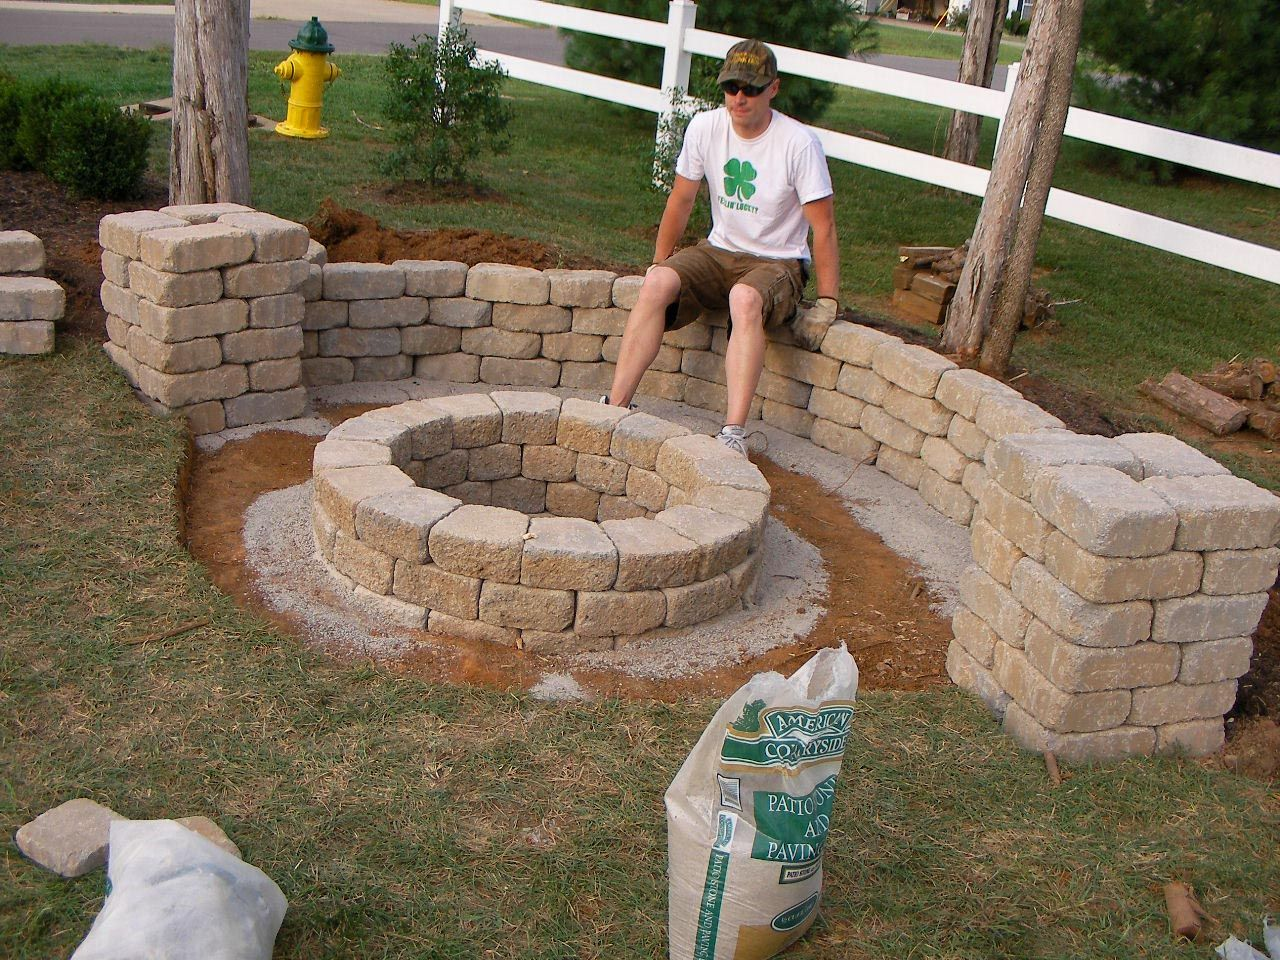 Backyard Landscaping Ideas With Fire Pit 10 diy awesome and interesting ideas for great gardens 1 fire pit areafire pitspatio ideaslandscaping ideasbackyard Easy Backyard Fire Pit Designs More